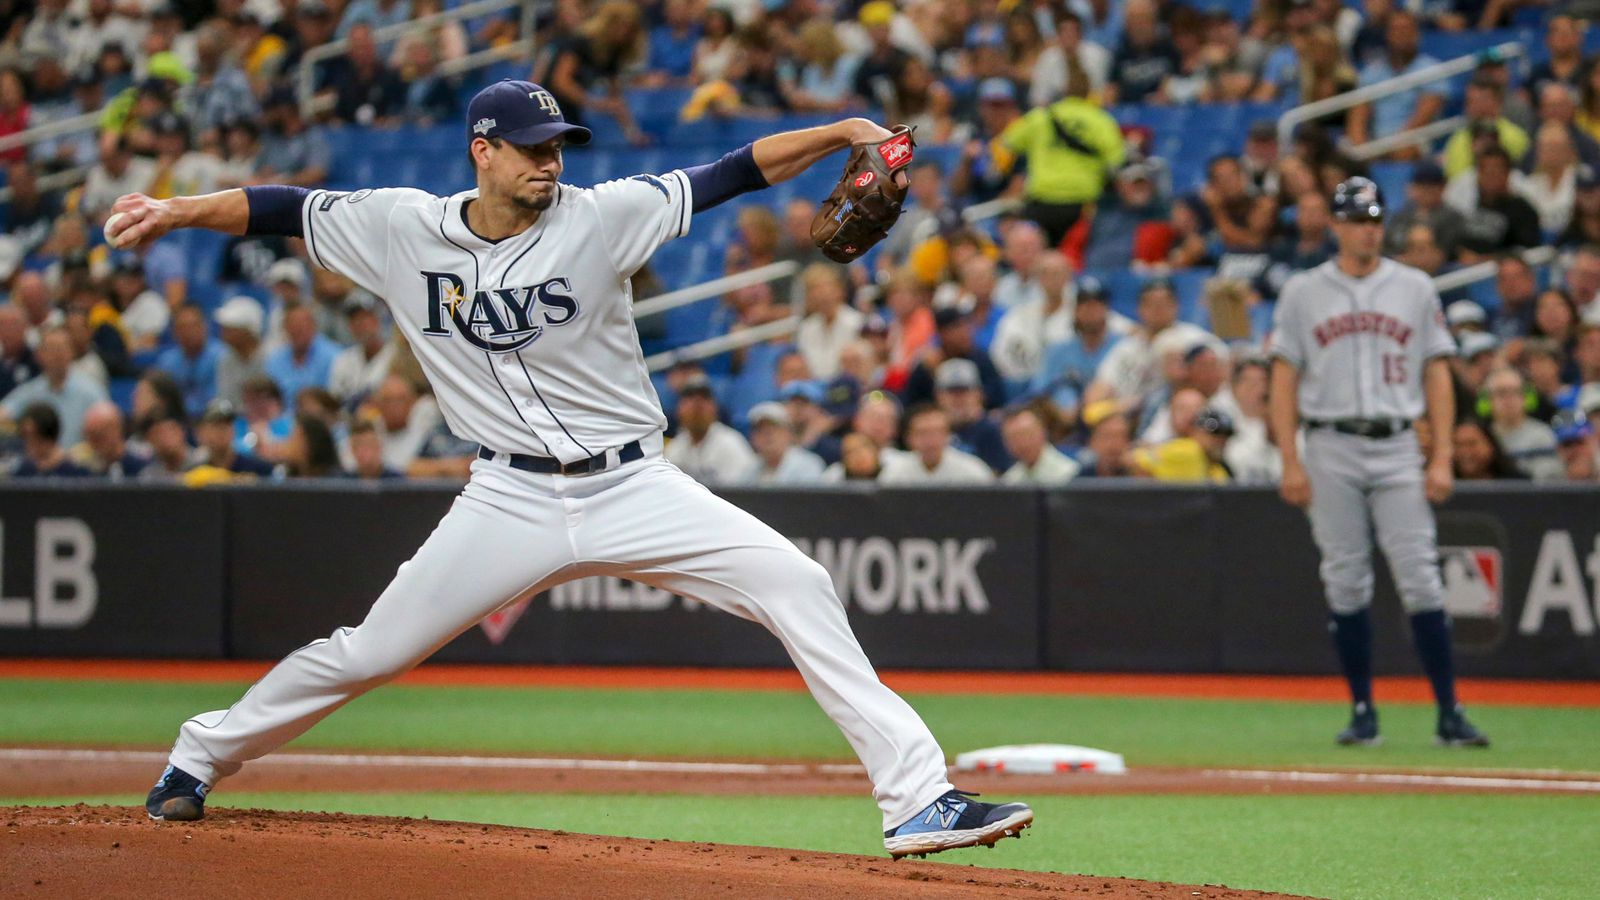 rays charlie morton on astros cheating i regret not doing more to stop it rays charlie morton on astros cheating